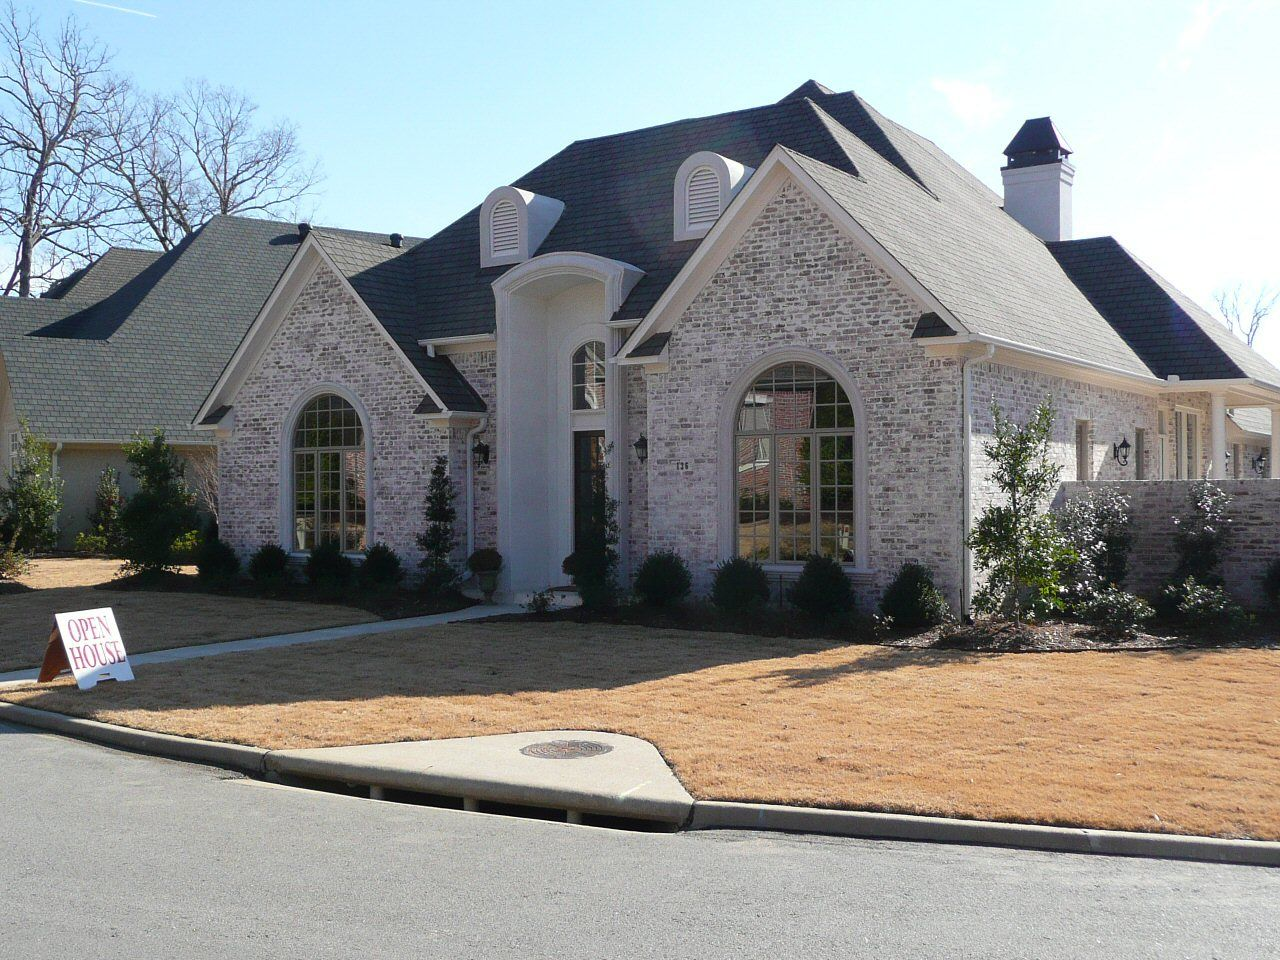 Medium Sized Houses For Sale Google Search Little Rock Arkansas Home And Garden Home